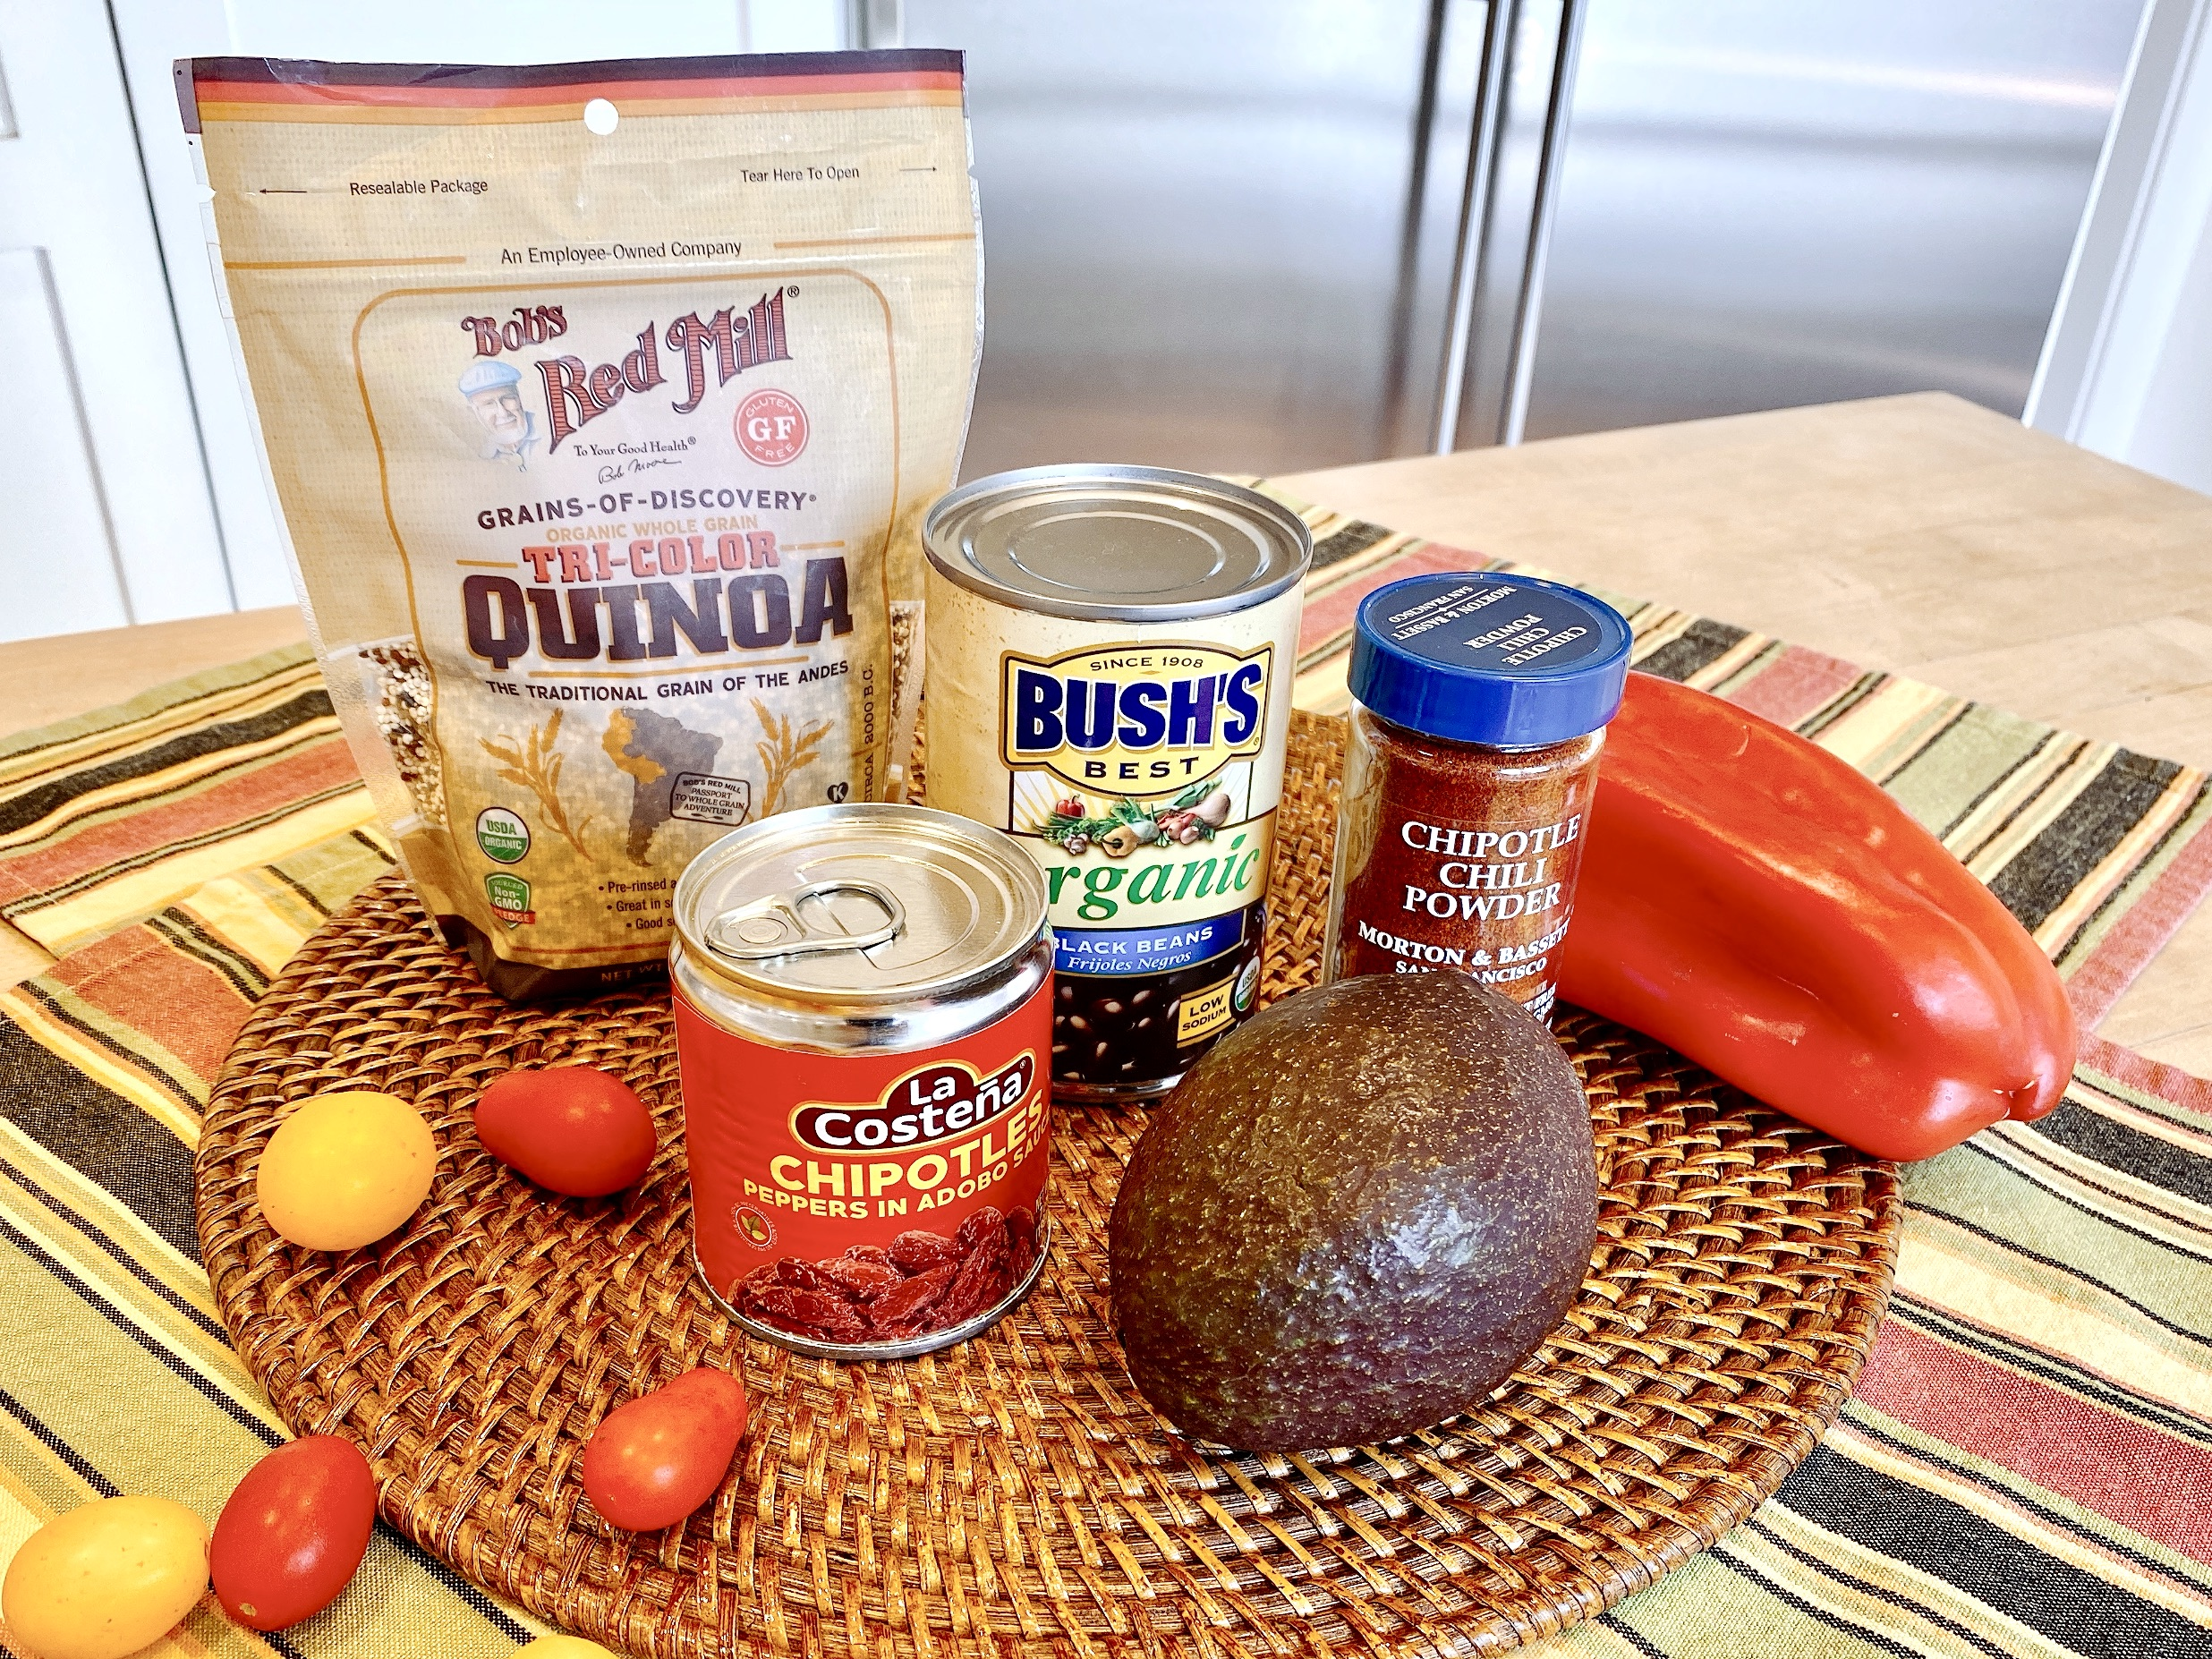 Ingredients to make Chipotle Steak Bowl with Black Beans and Quinoa can be easily found at most grocery stores